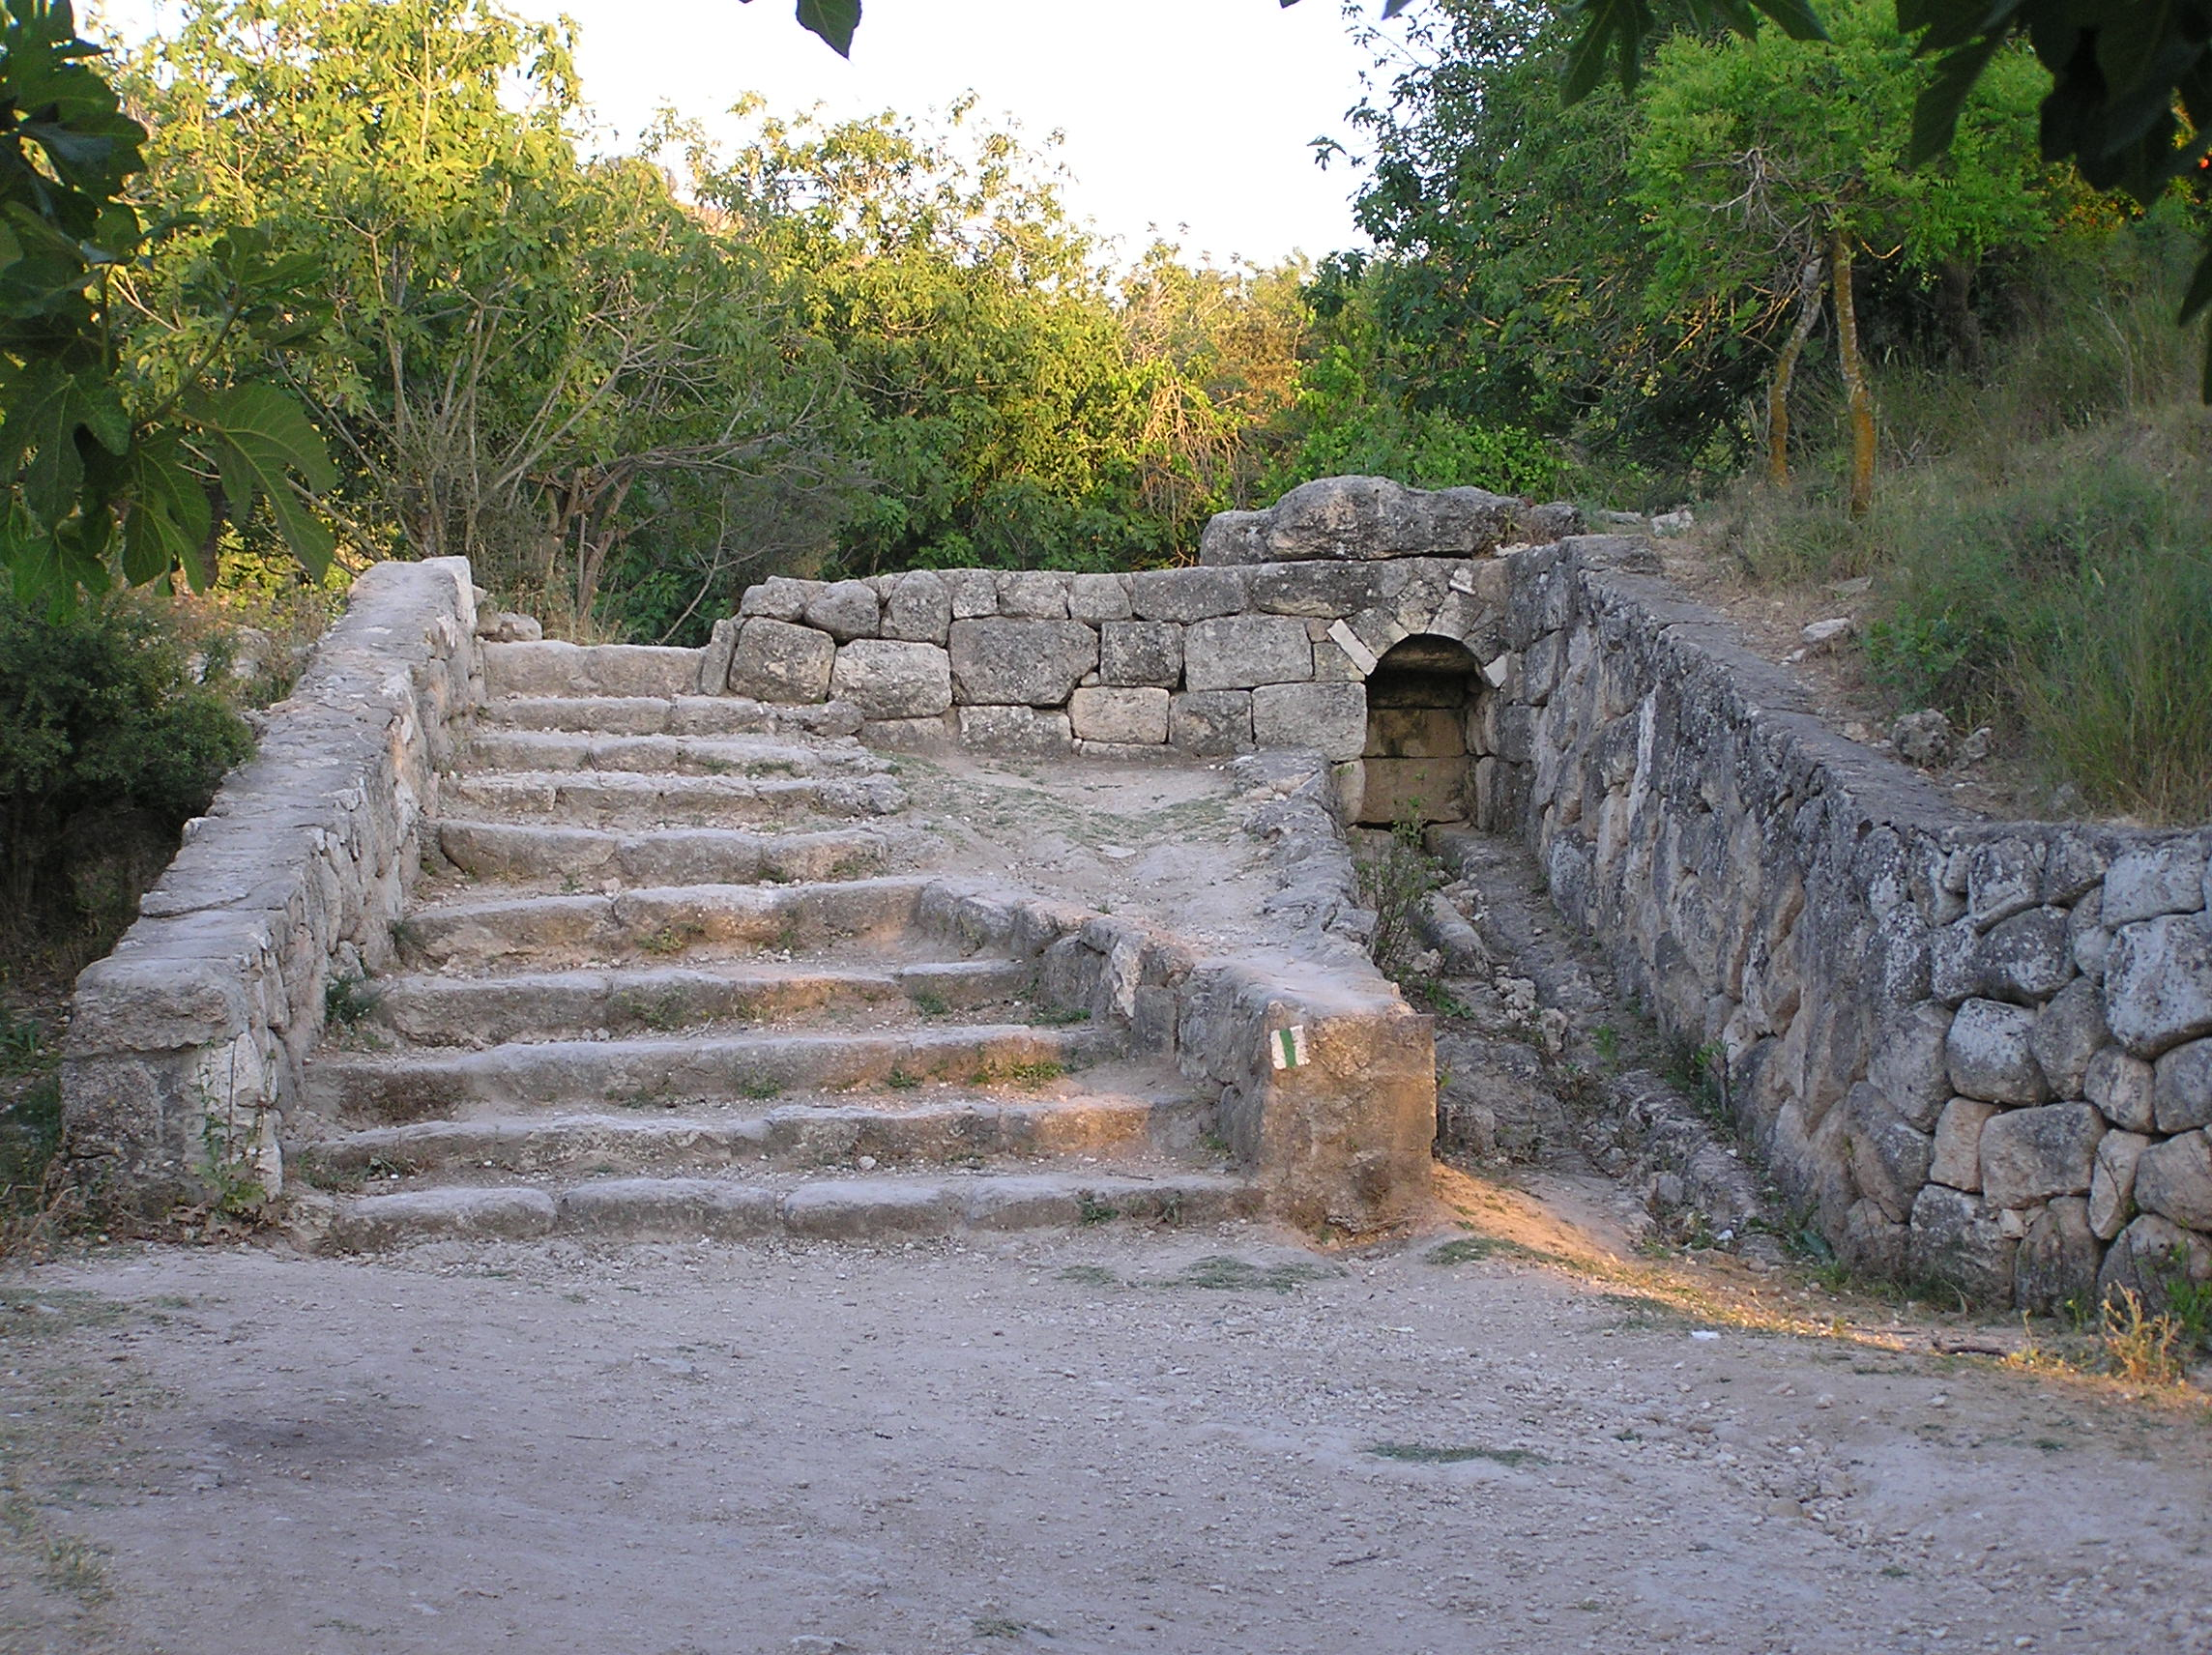 'Imwas - عِمواس : The Dry Ain Pathway/Route To The Right Of Stone Steps. Note The Fig Trees!